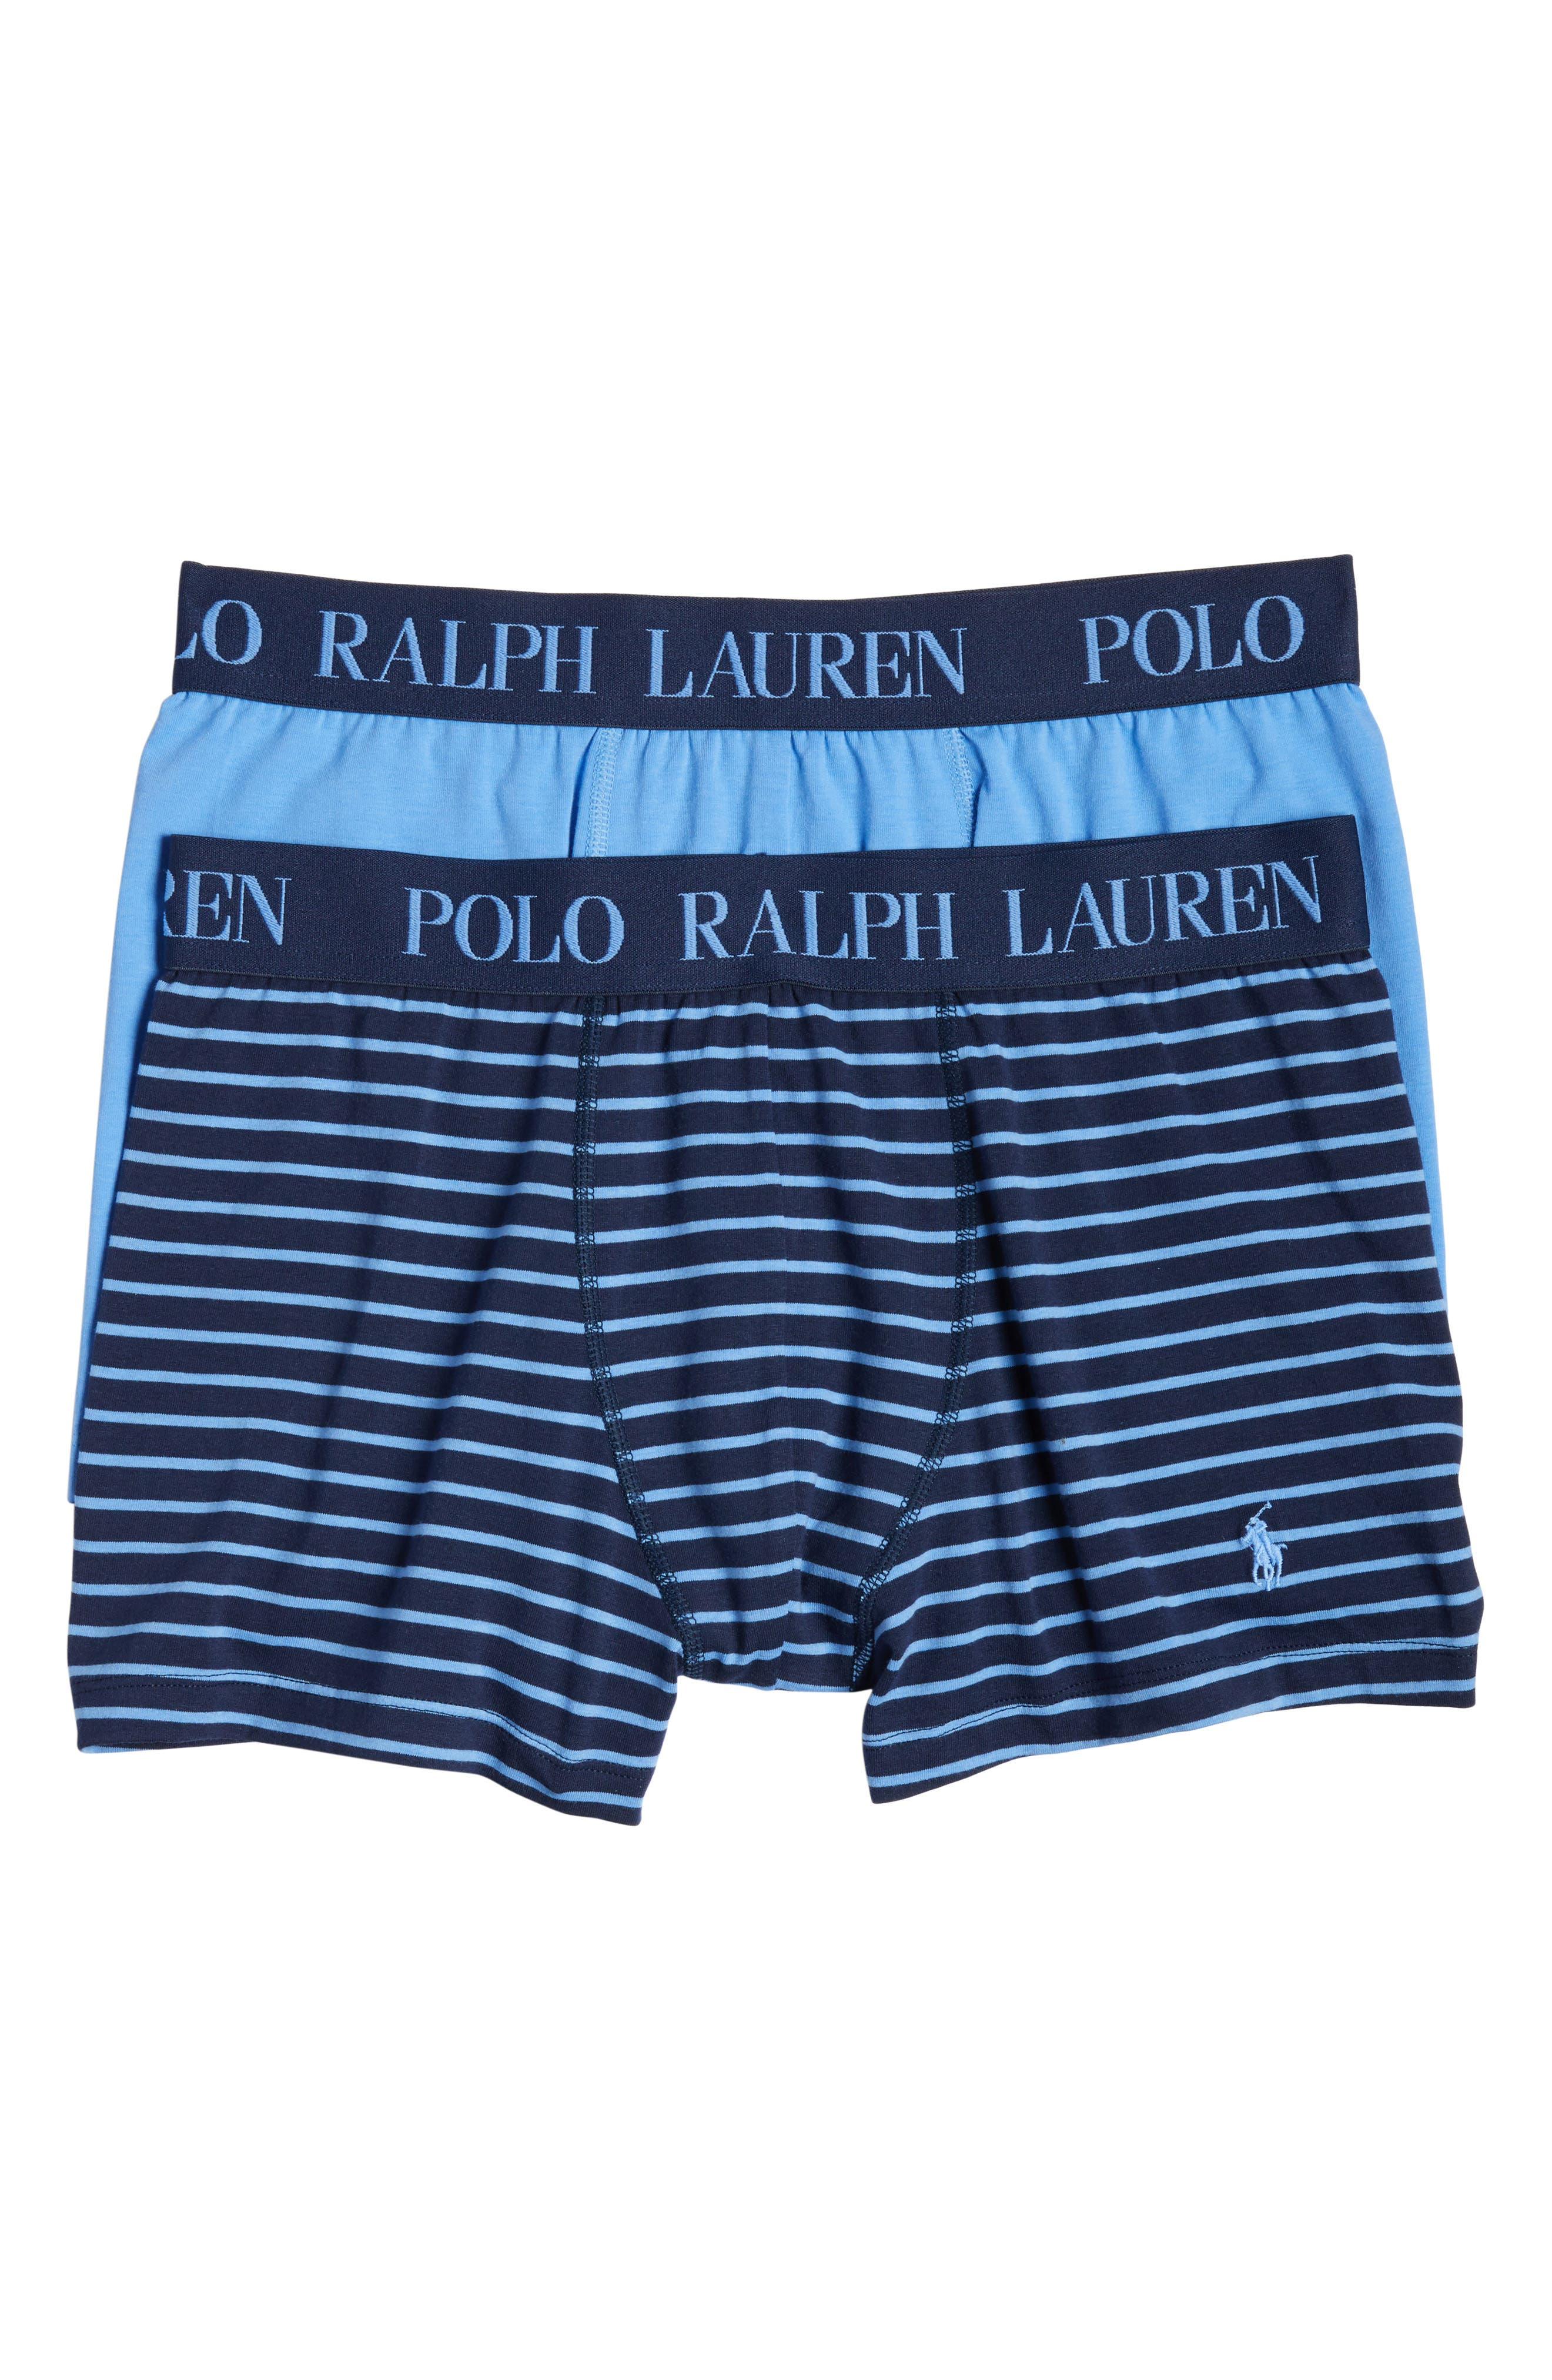 2-Pack Comfort Cotton Boxer Briefs,                         Main,                         color, Cruise Navy/ Harbour Island